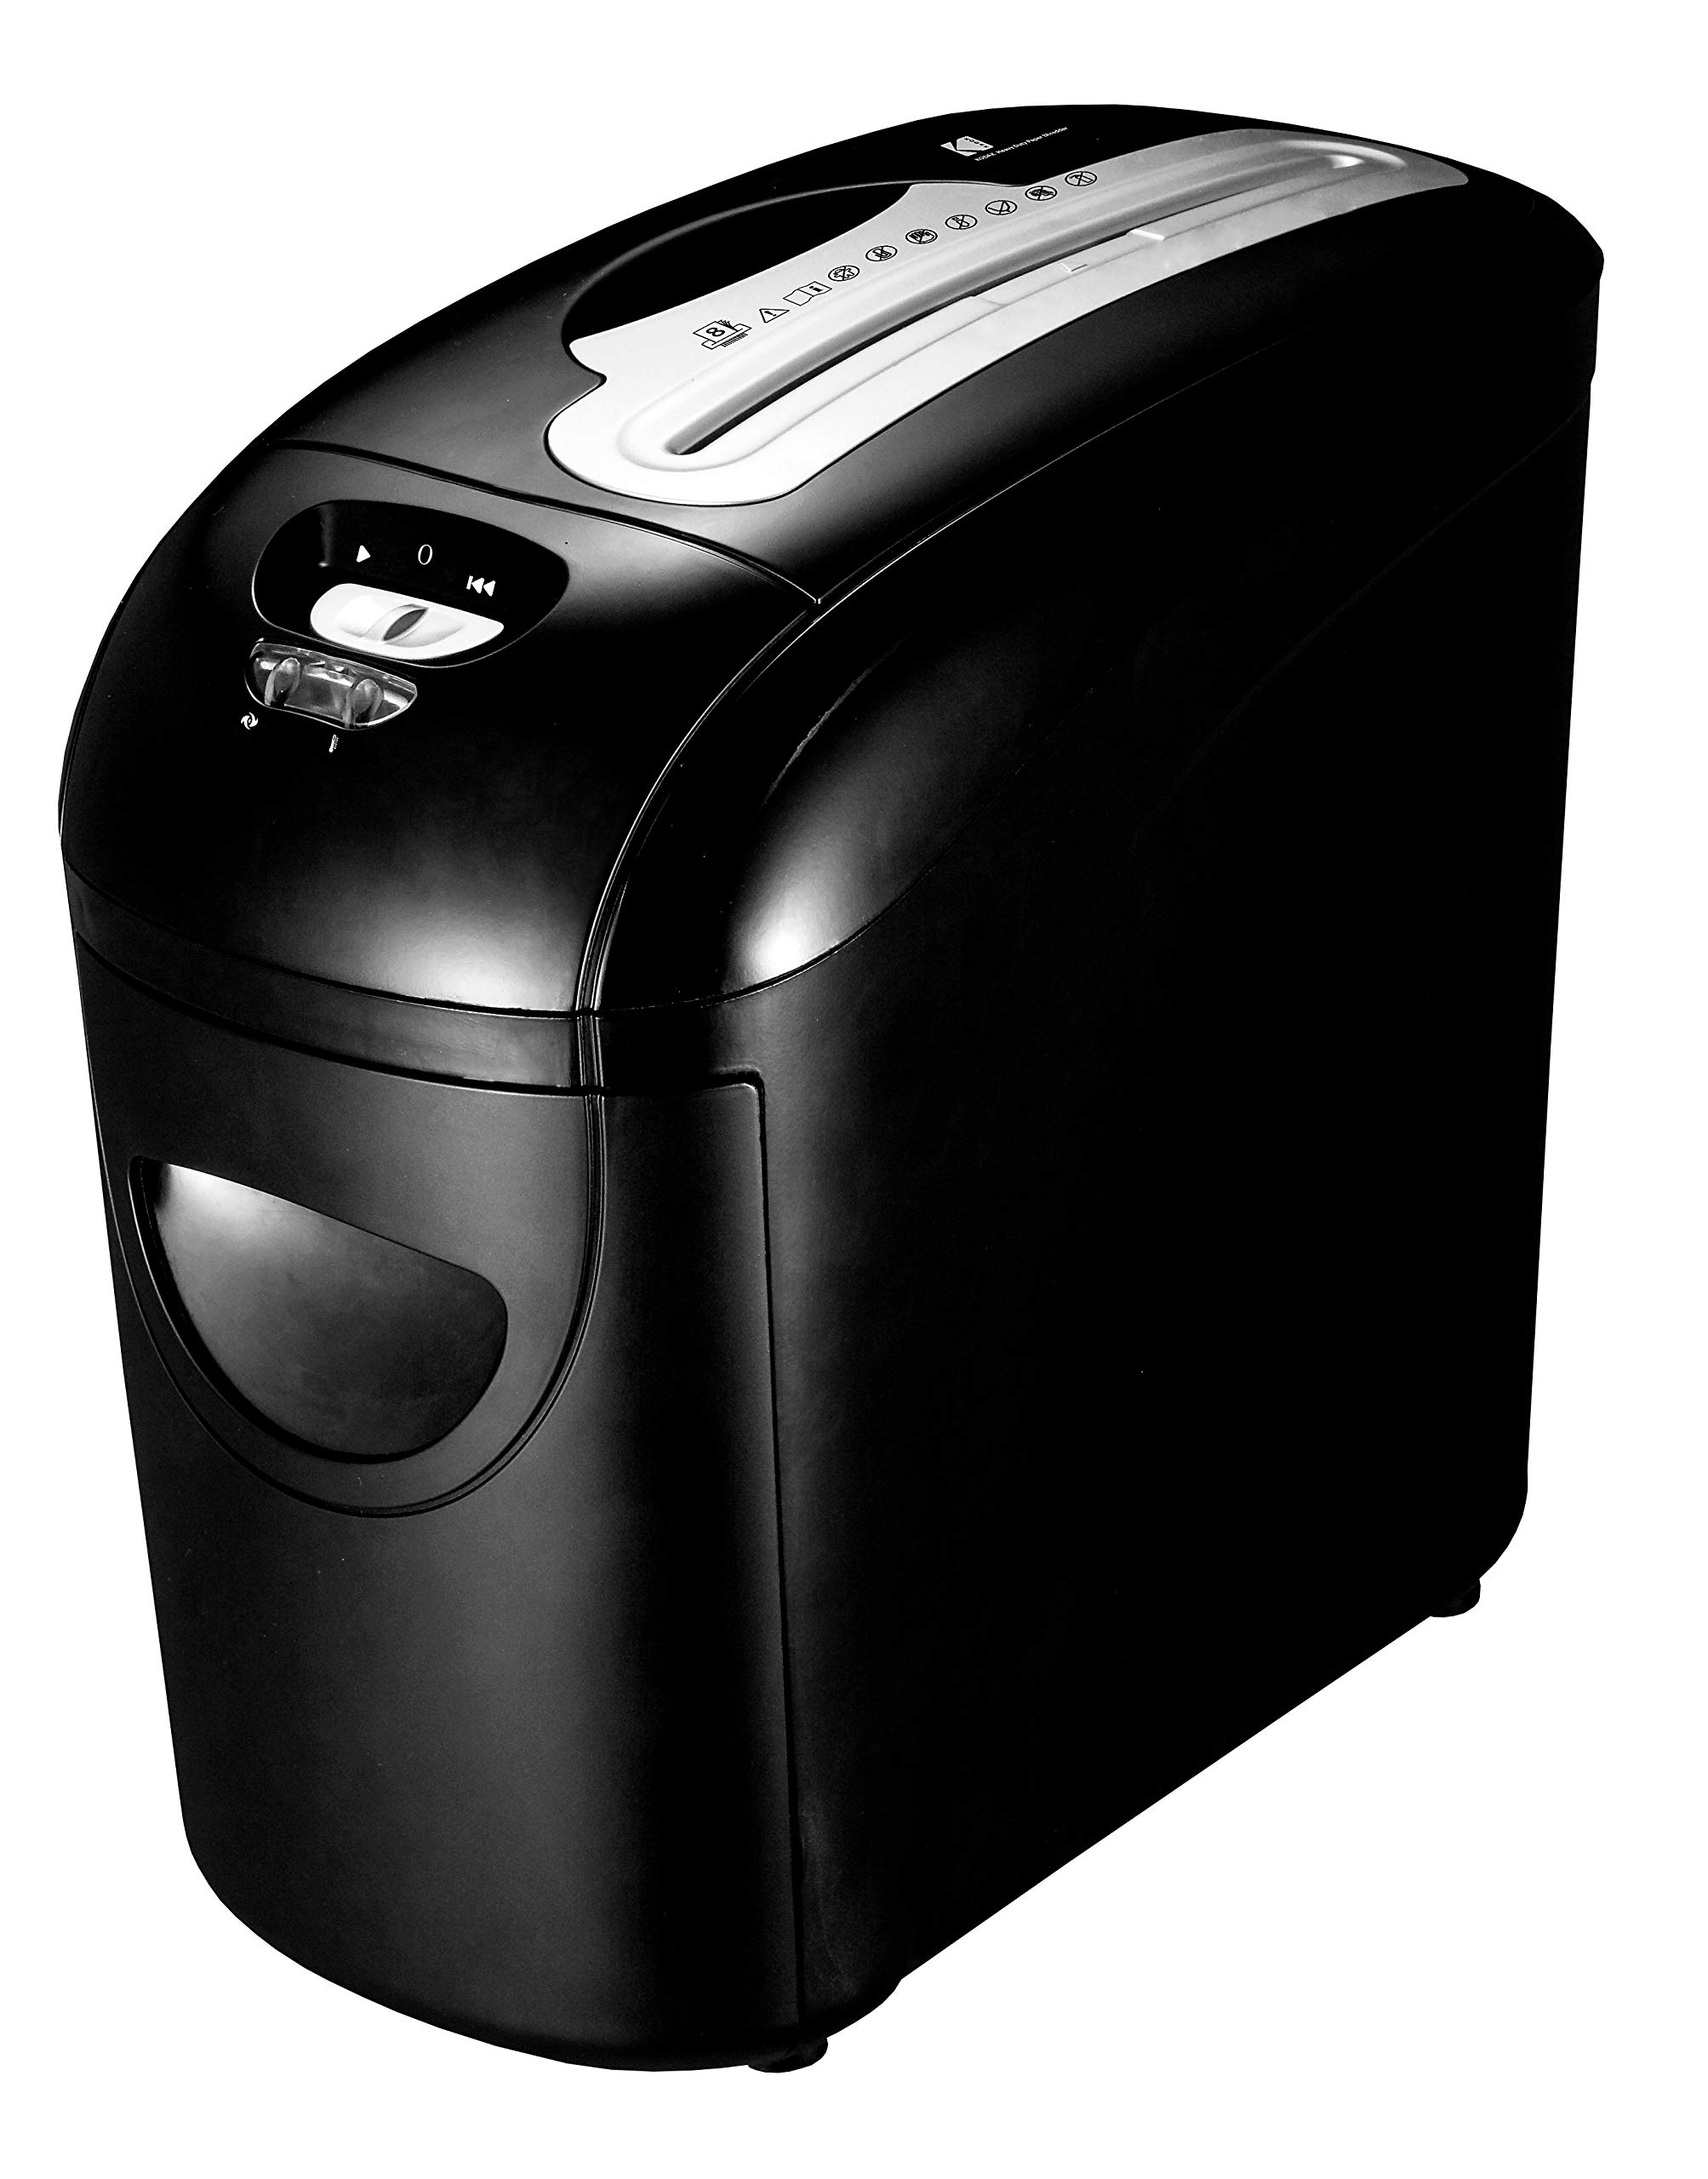 KODAK 8 Sheet, Cross-Cut Paper Shredder, Big Pull-Out Bin = Less Dumping Mess! Double Life-Span. Price-Reduced !!! by Kodak (Image #2)